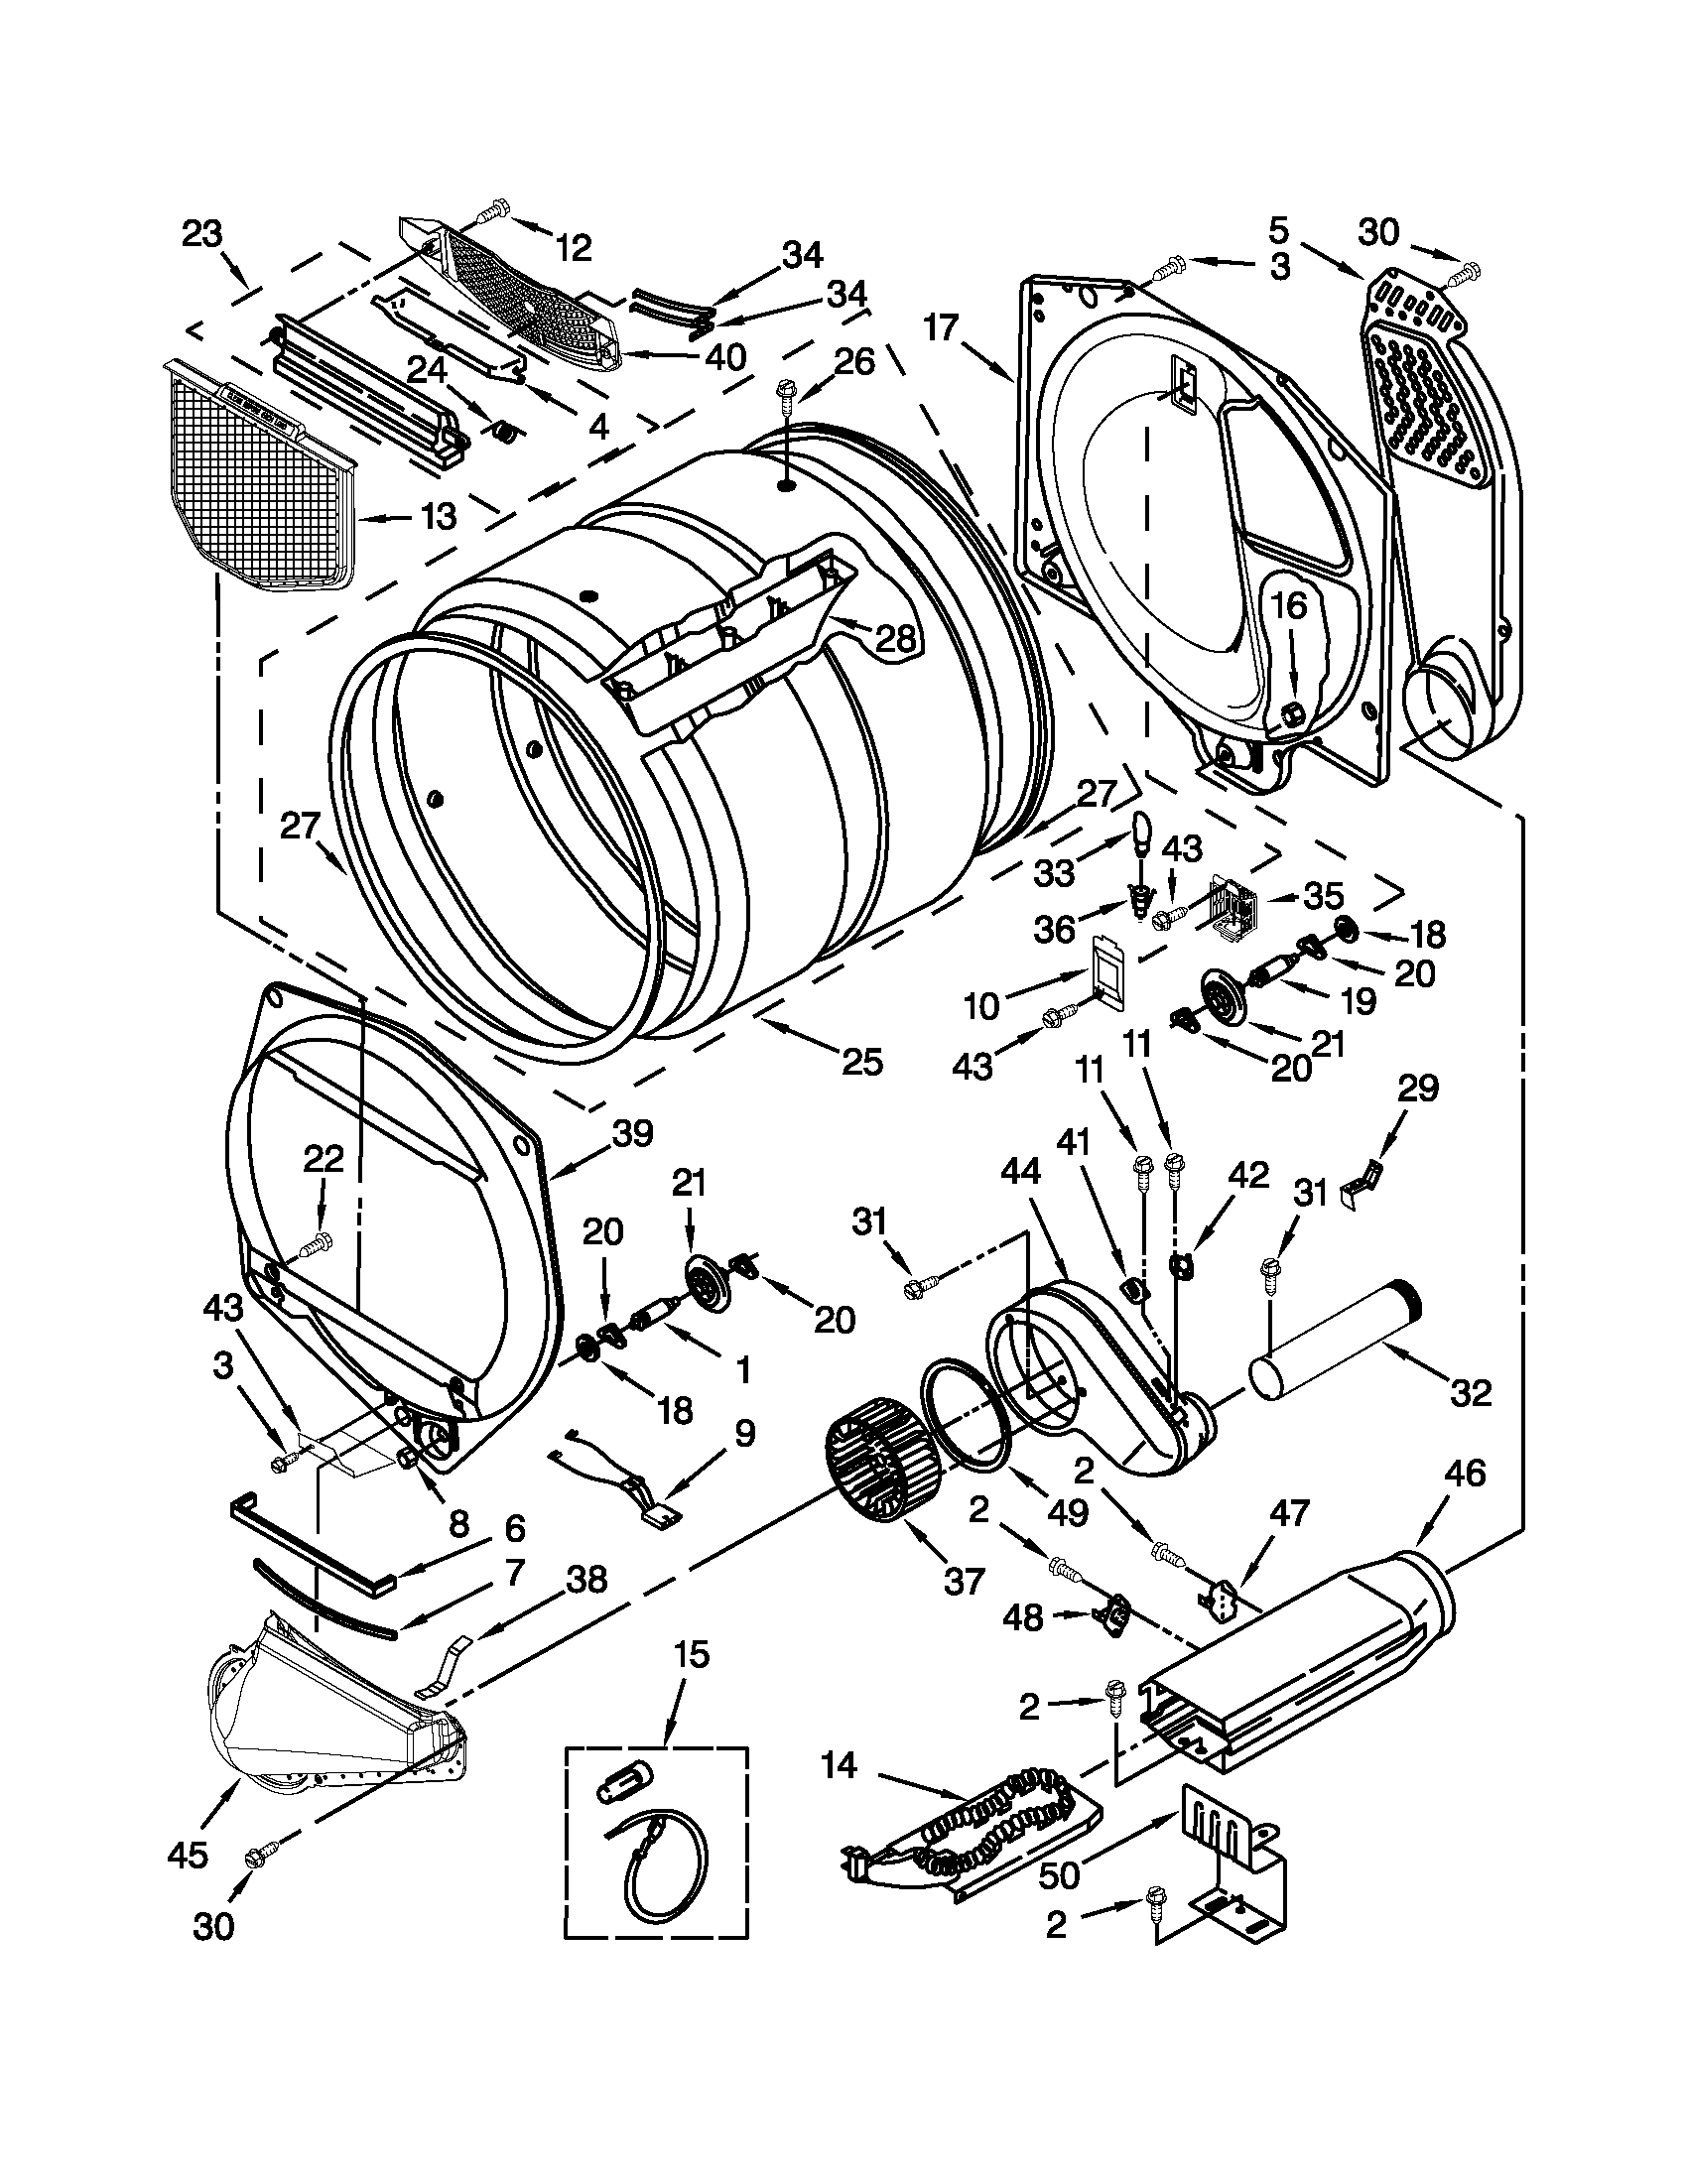 Whirlpool WED5800BW0 bulkhead parts diagram